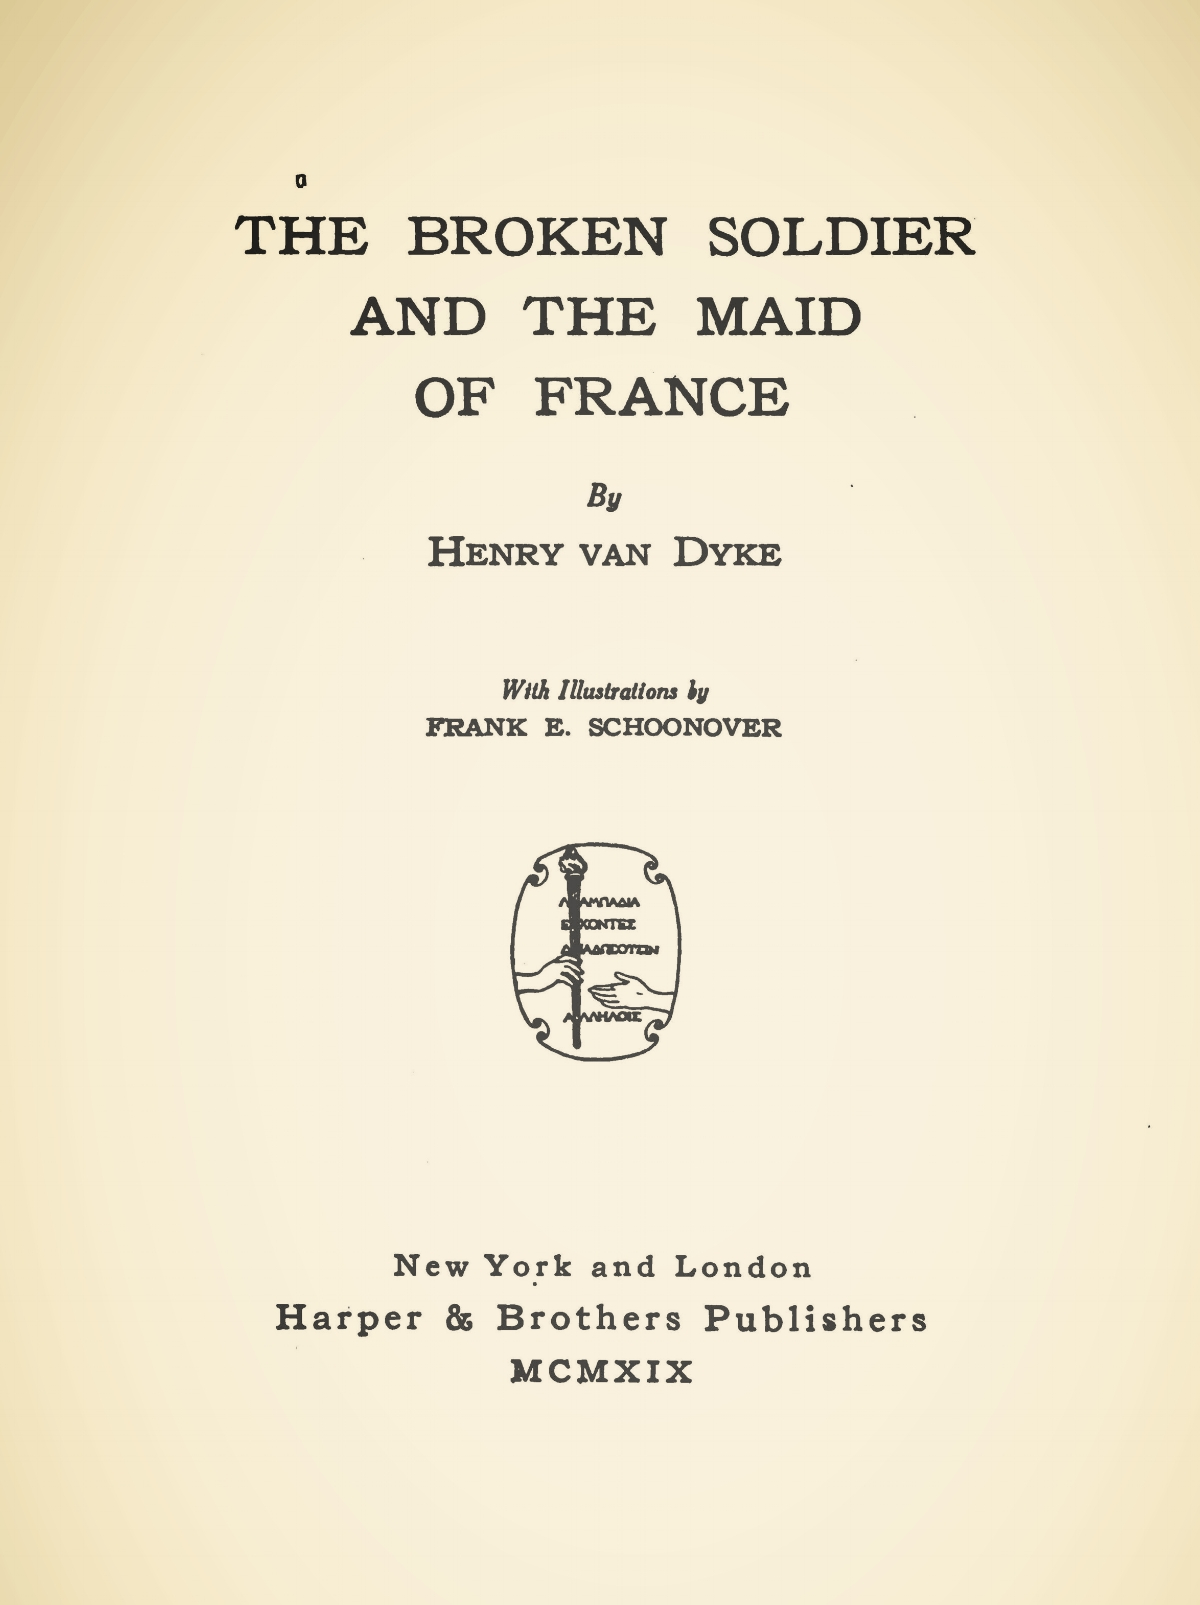 Van Dyke, Jr., Henry Jackson, The Broken Soldier and the Maid of France Title Page.jpg